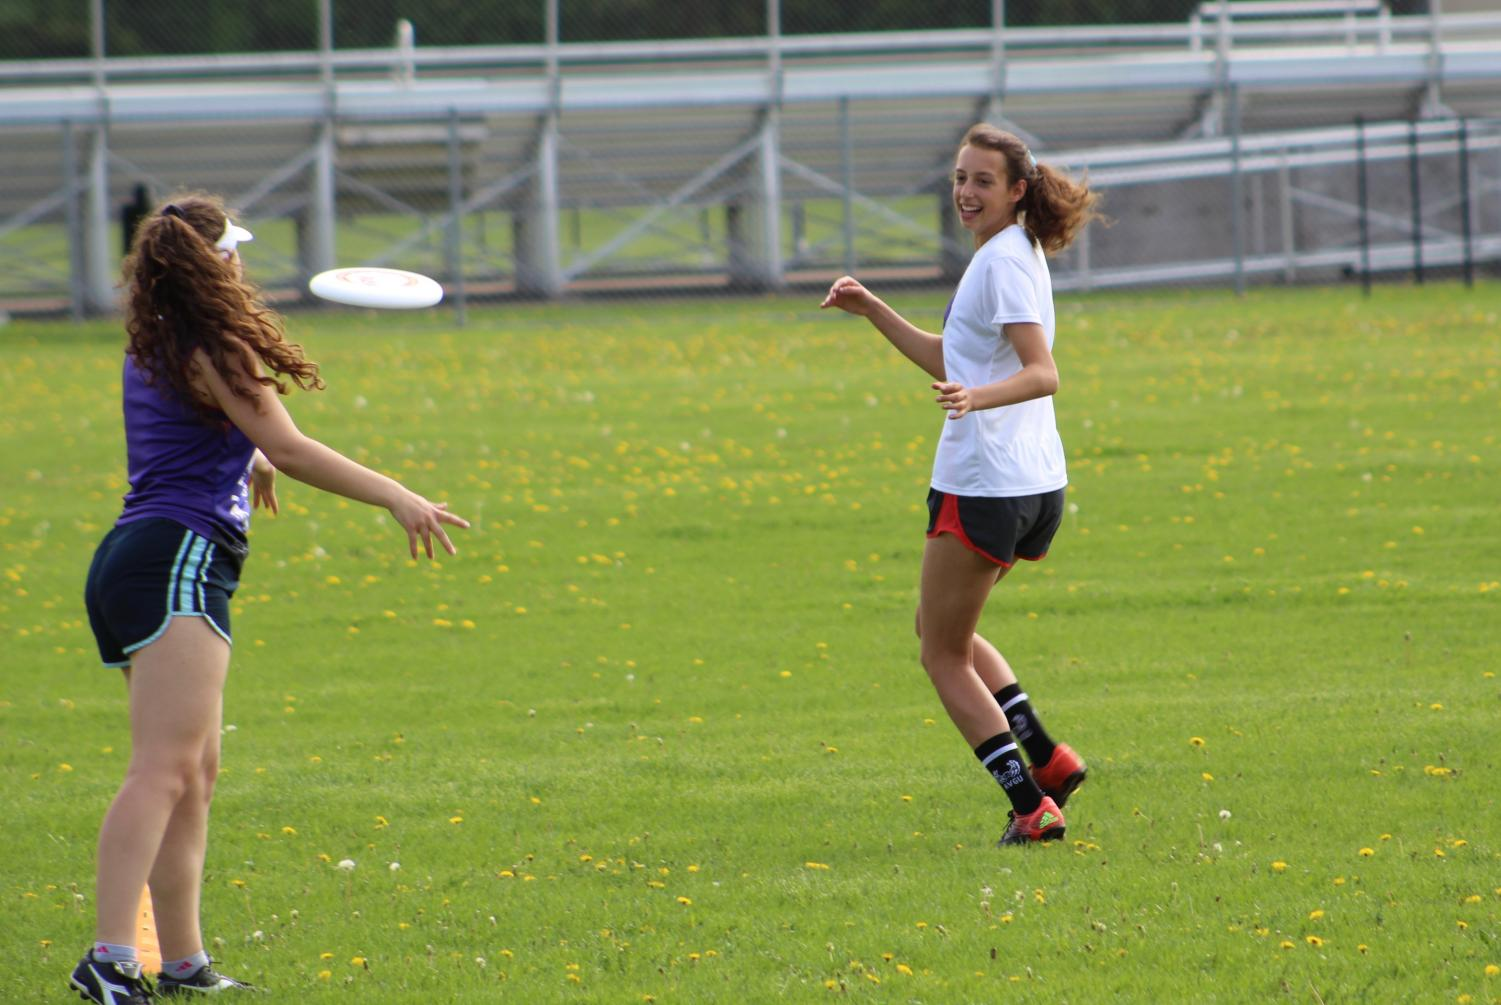 Senior Esther Gendler runs to catch a pass during the girls' ultimate team's practice May 21.